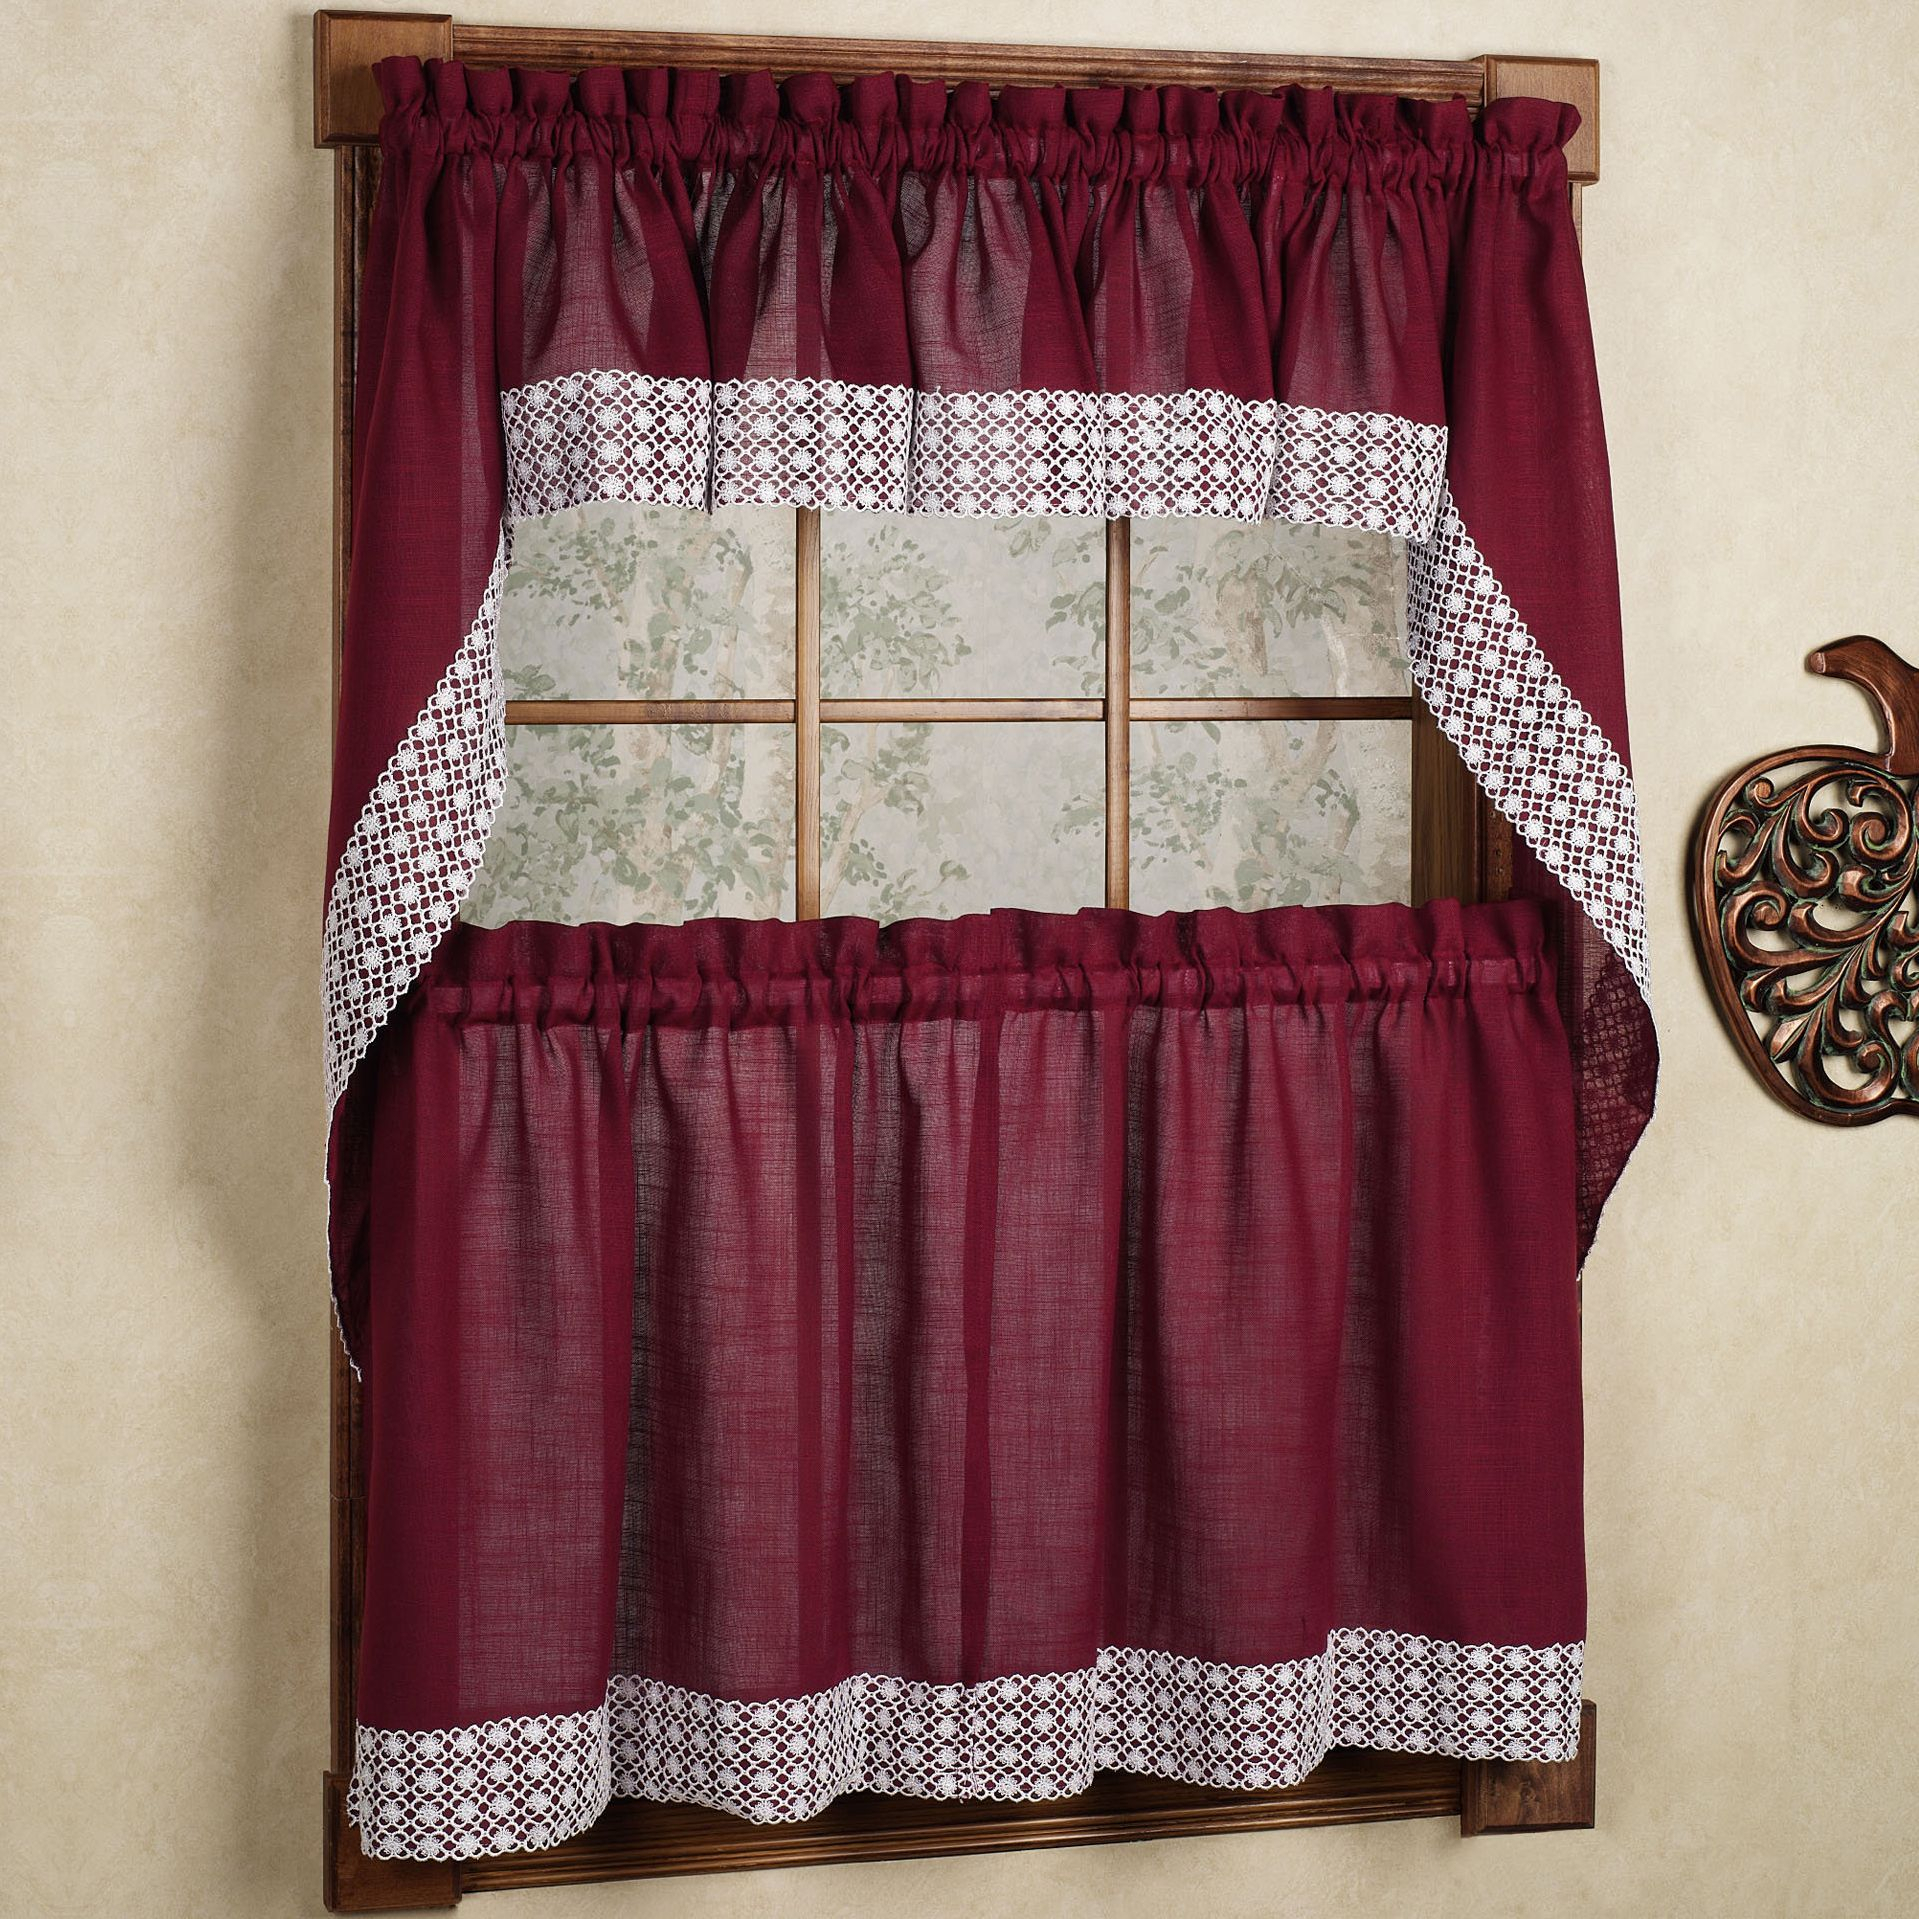 Burgundy Country Style Curtain Parts With White Daisy Lace Inside Country Style Curtain Parts With White Daisy Lace Accent (View 3 of 20)